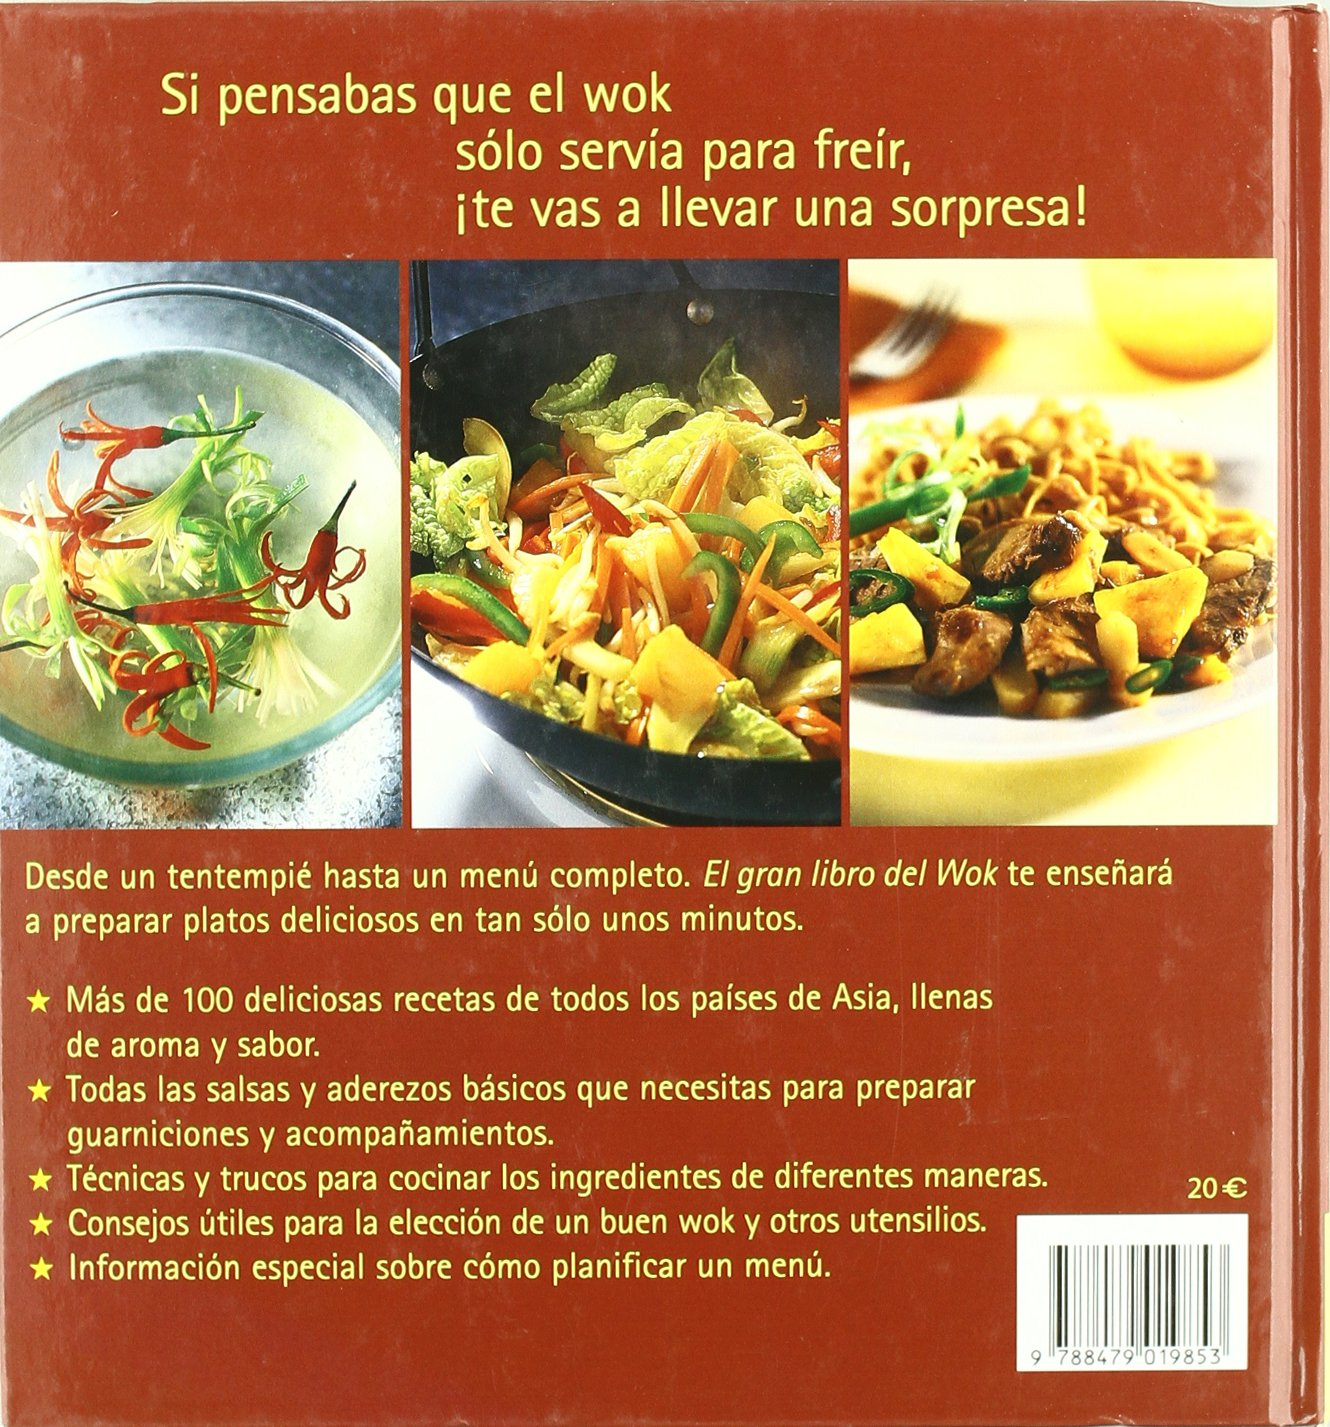 El Gran Libro del Wok (Spanish Edition): 9788479019853: Amazon.com: Books